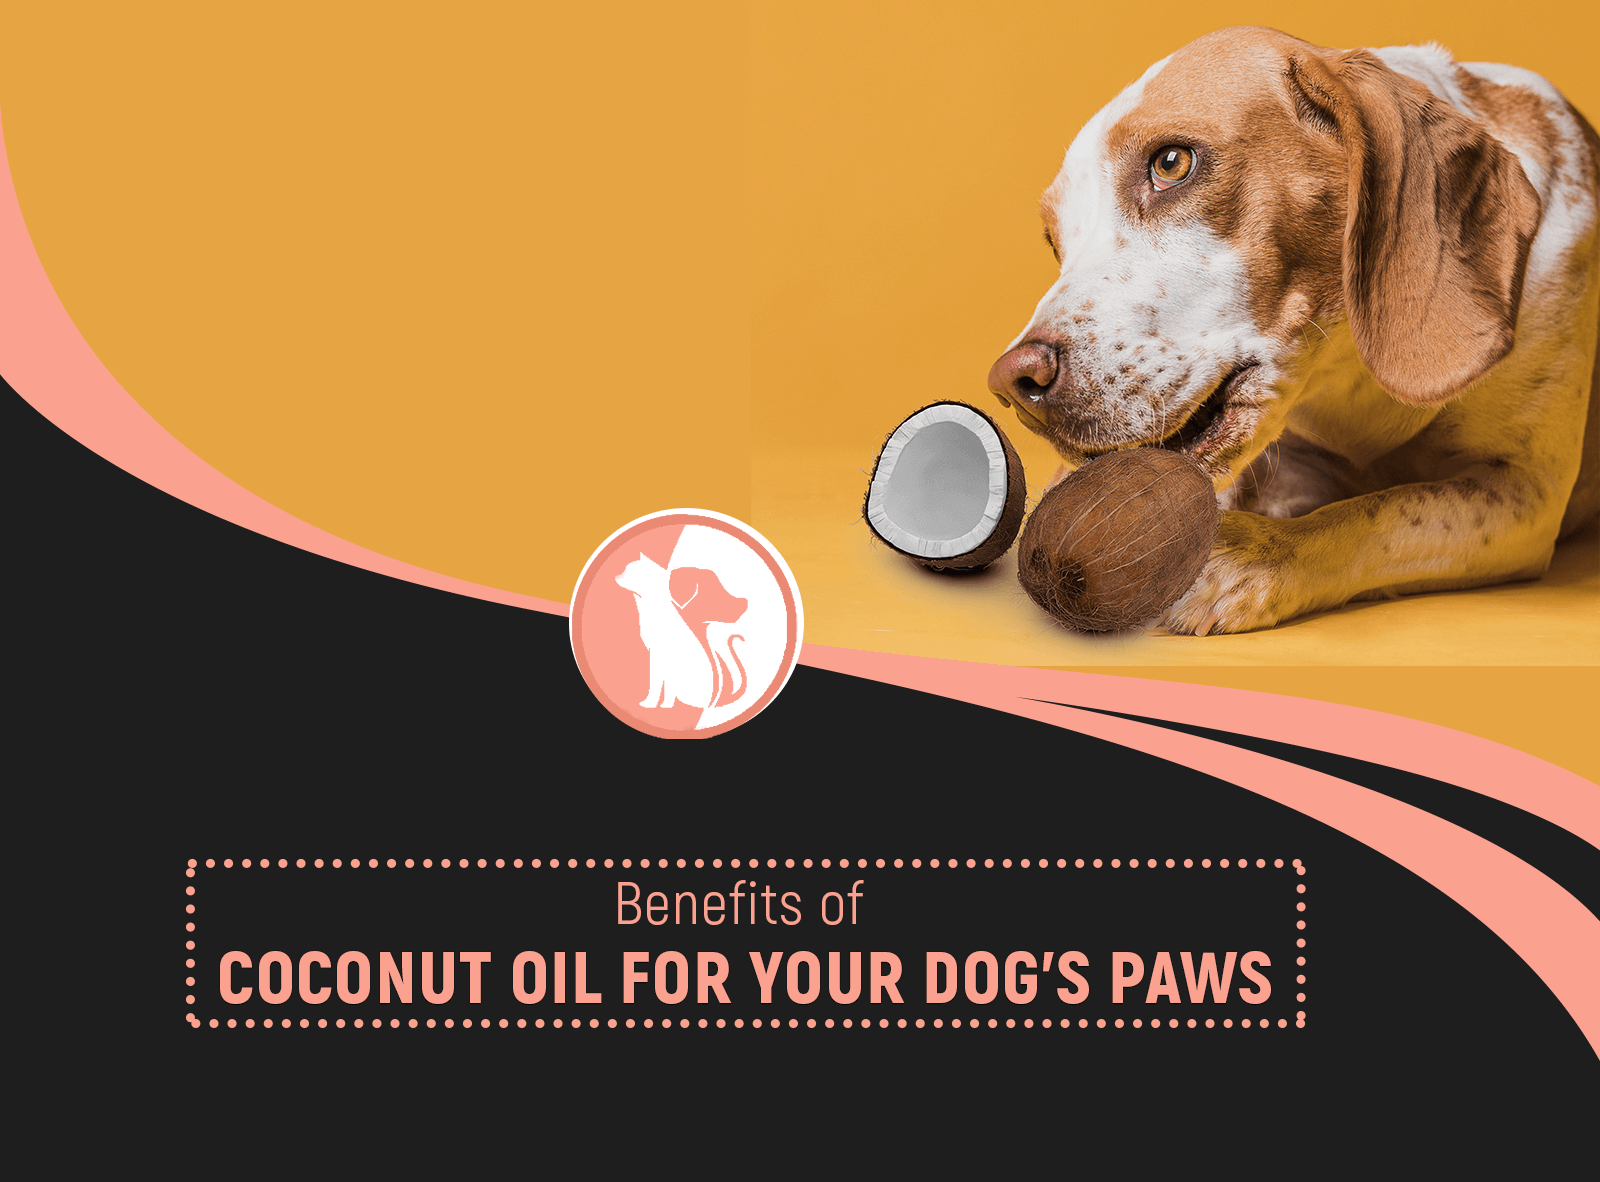 Benefits of Coconut Oil for Your Dog's Paws